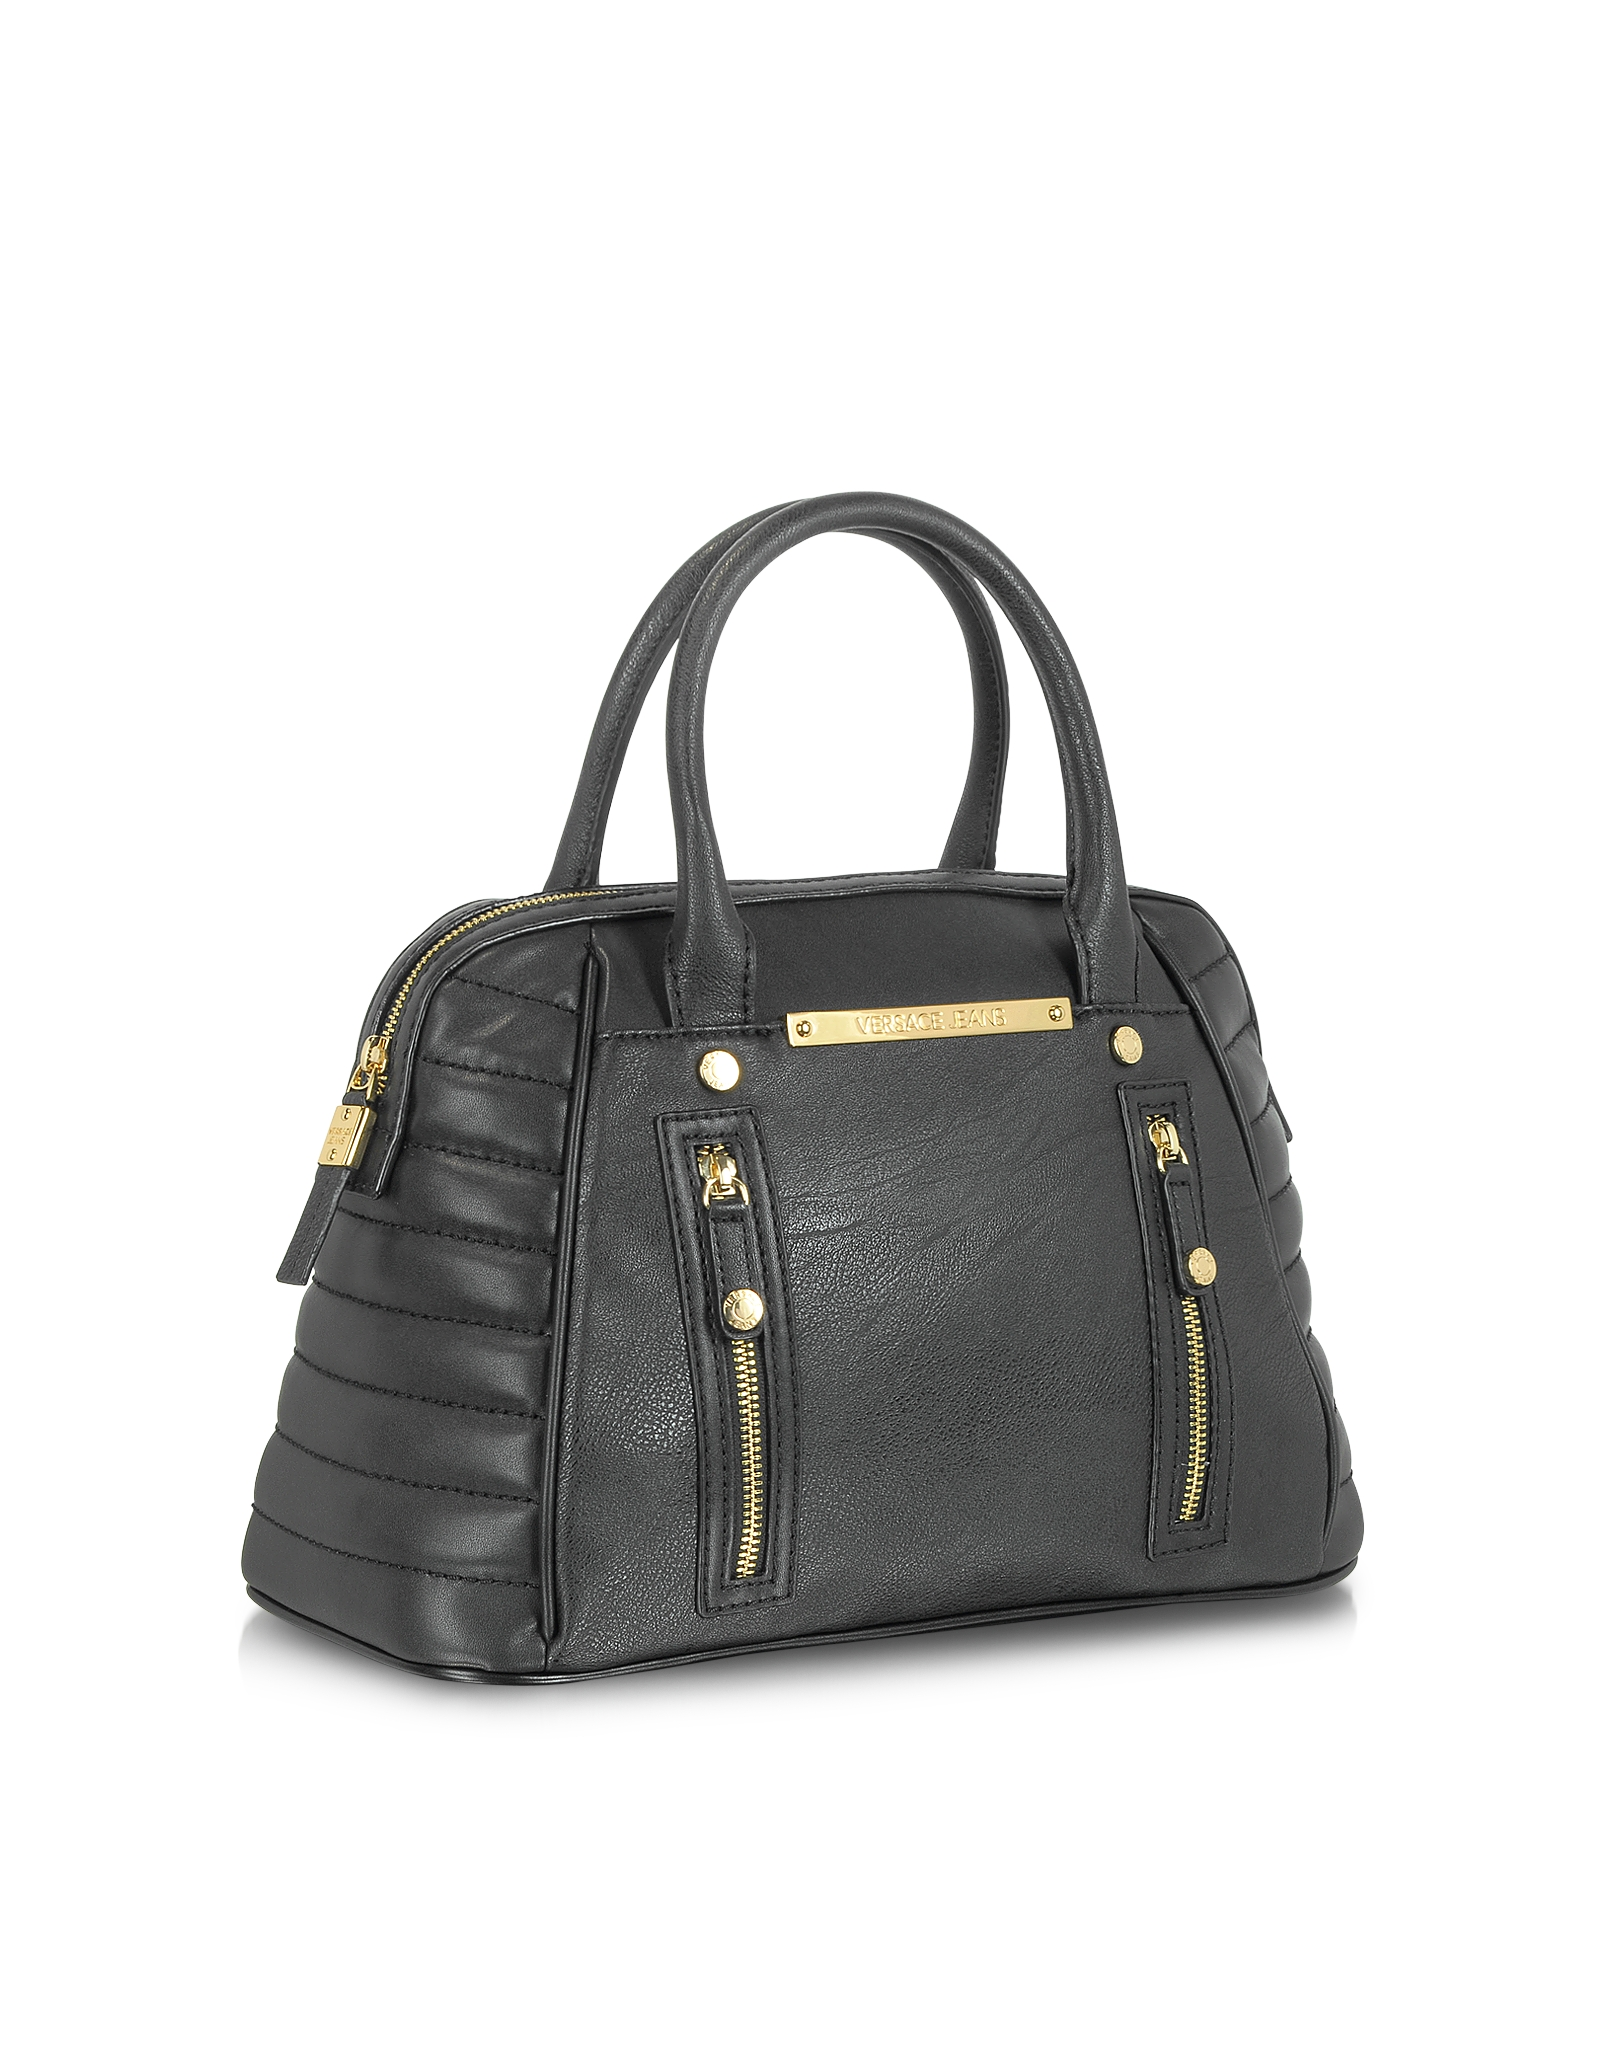 Lyst - Versace Jeans Black Eco Leather Bowler Bag in Black 1d30b38763